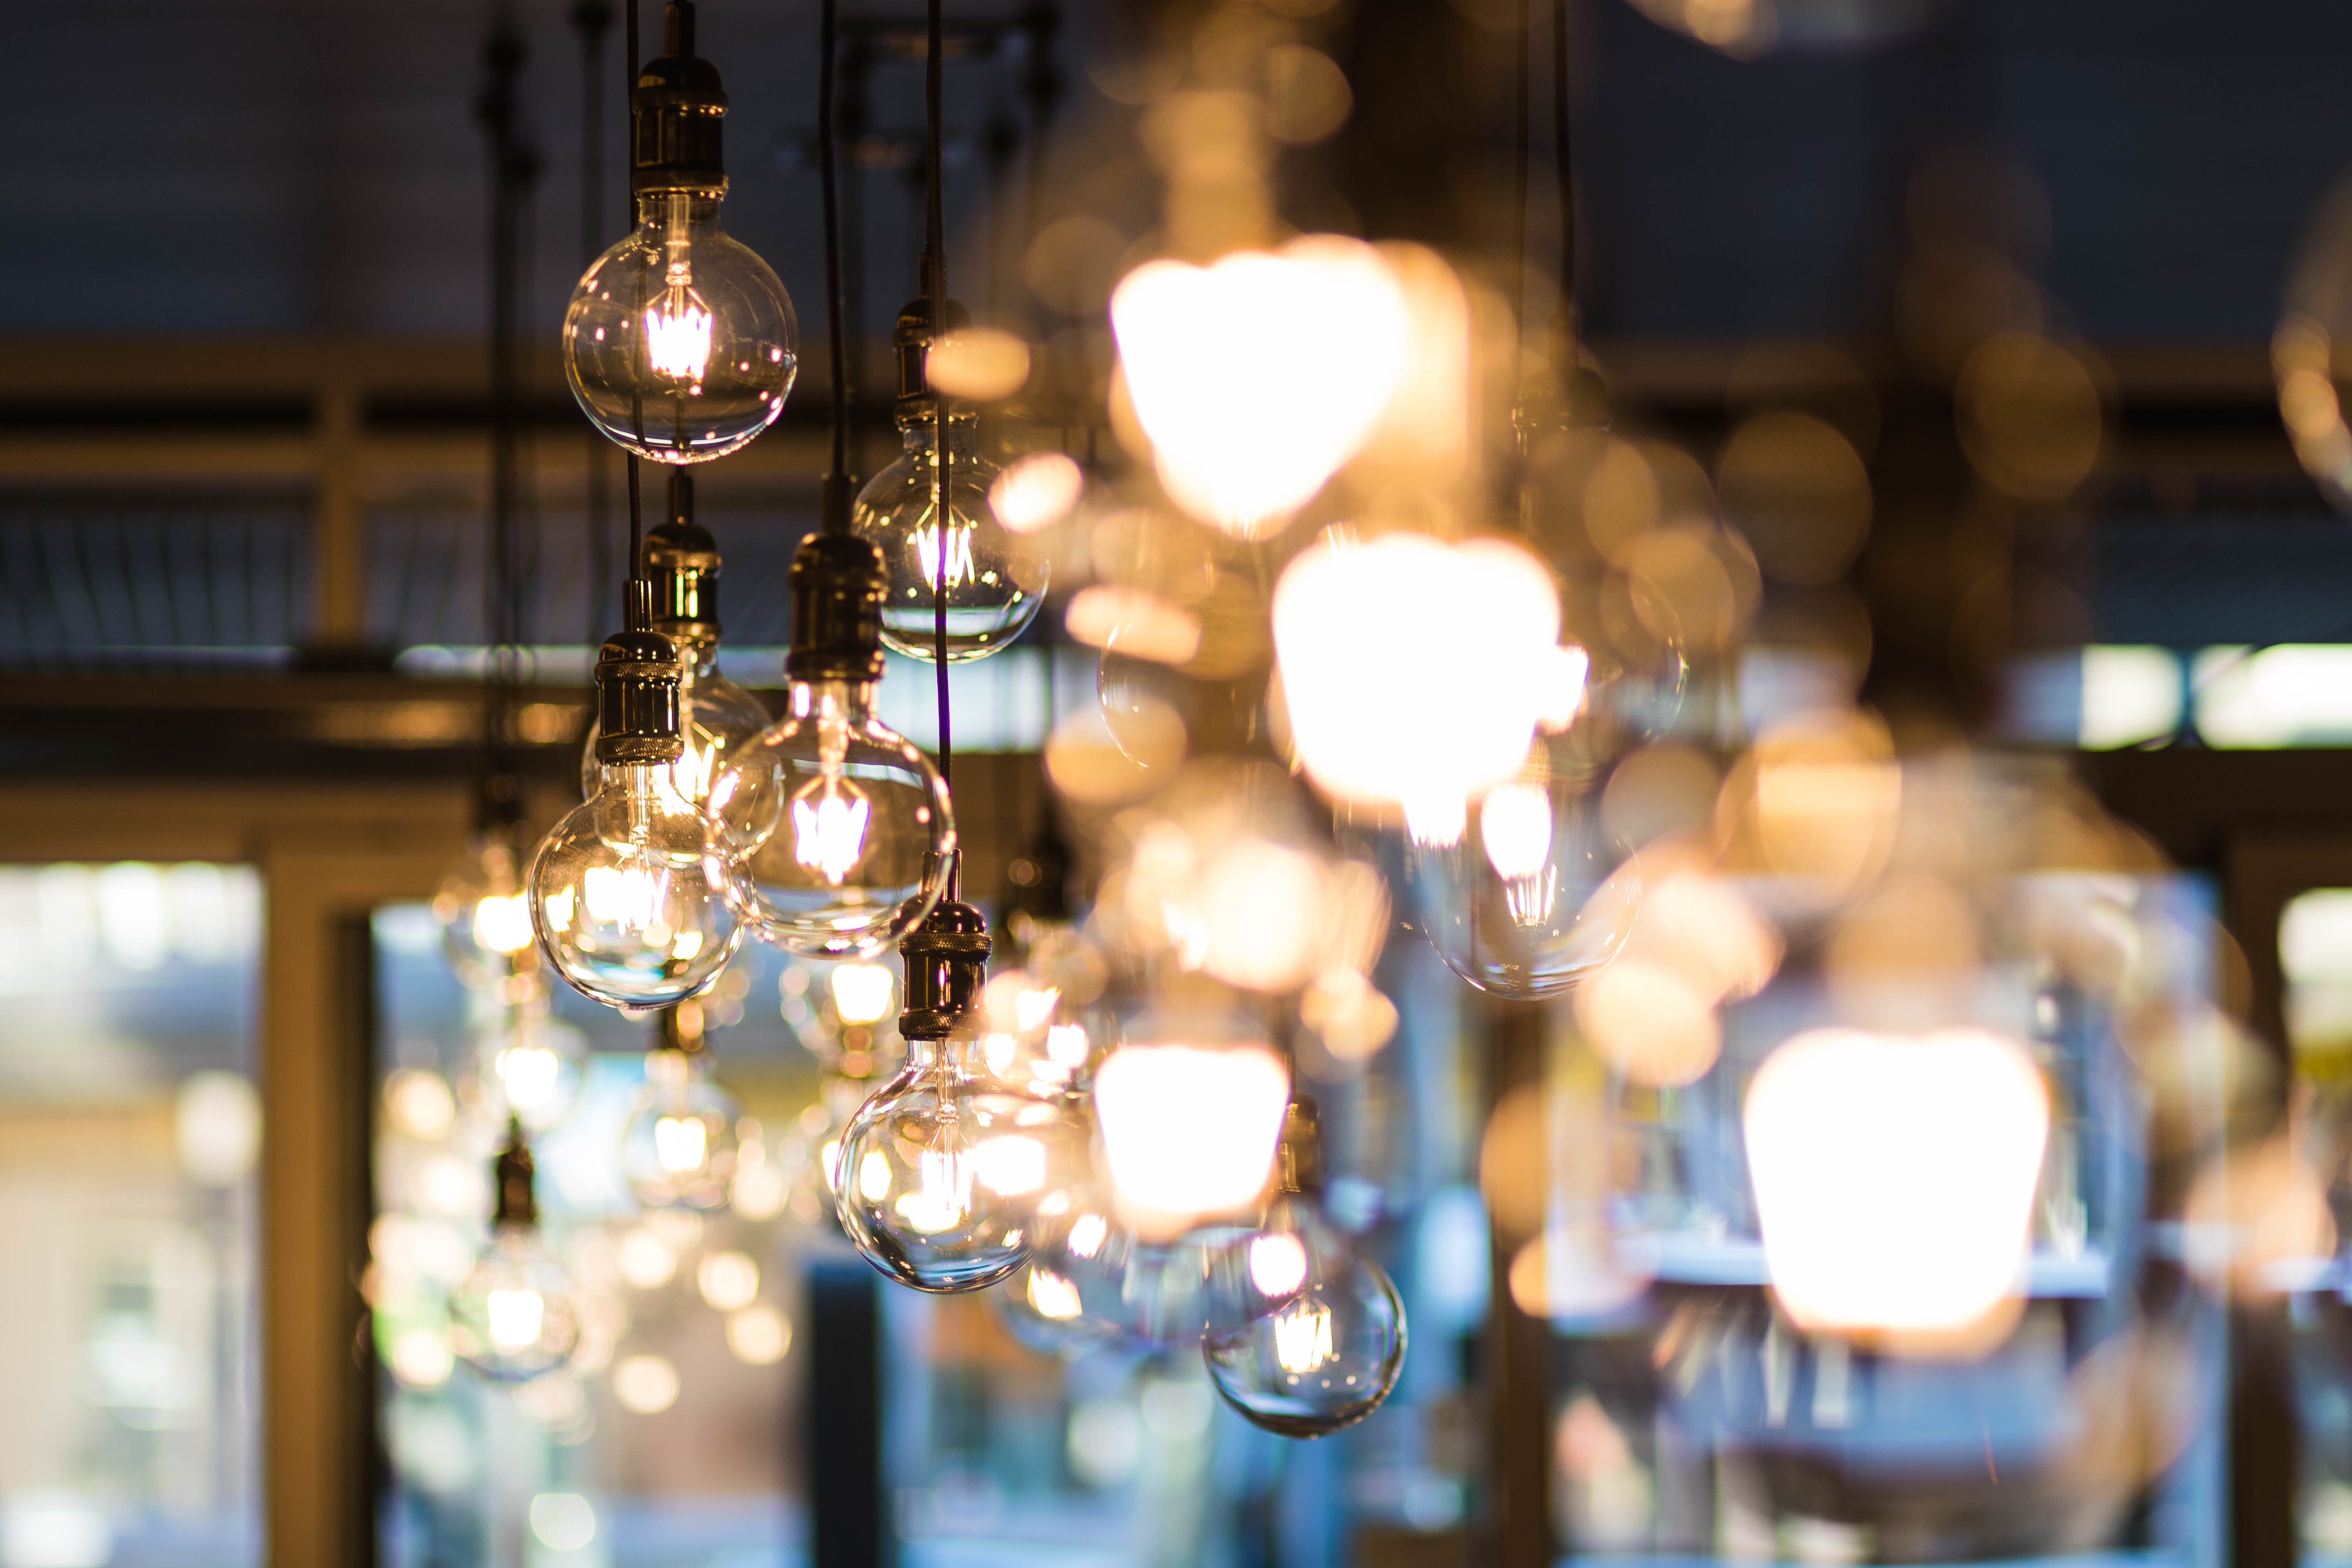 Electric Lights Installer in London - Handy Squad